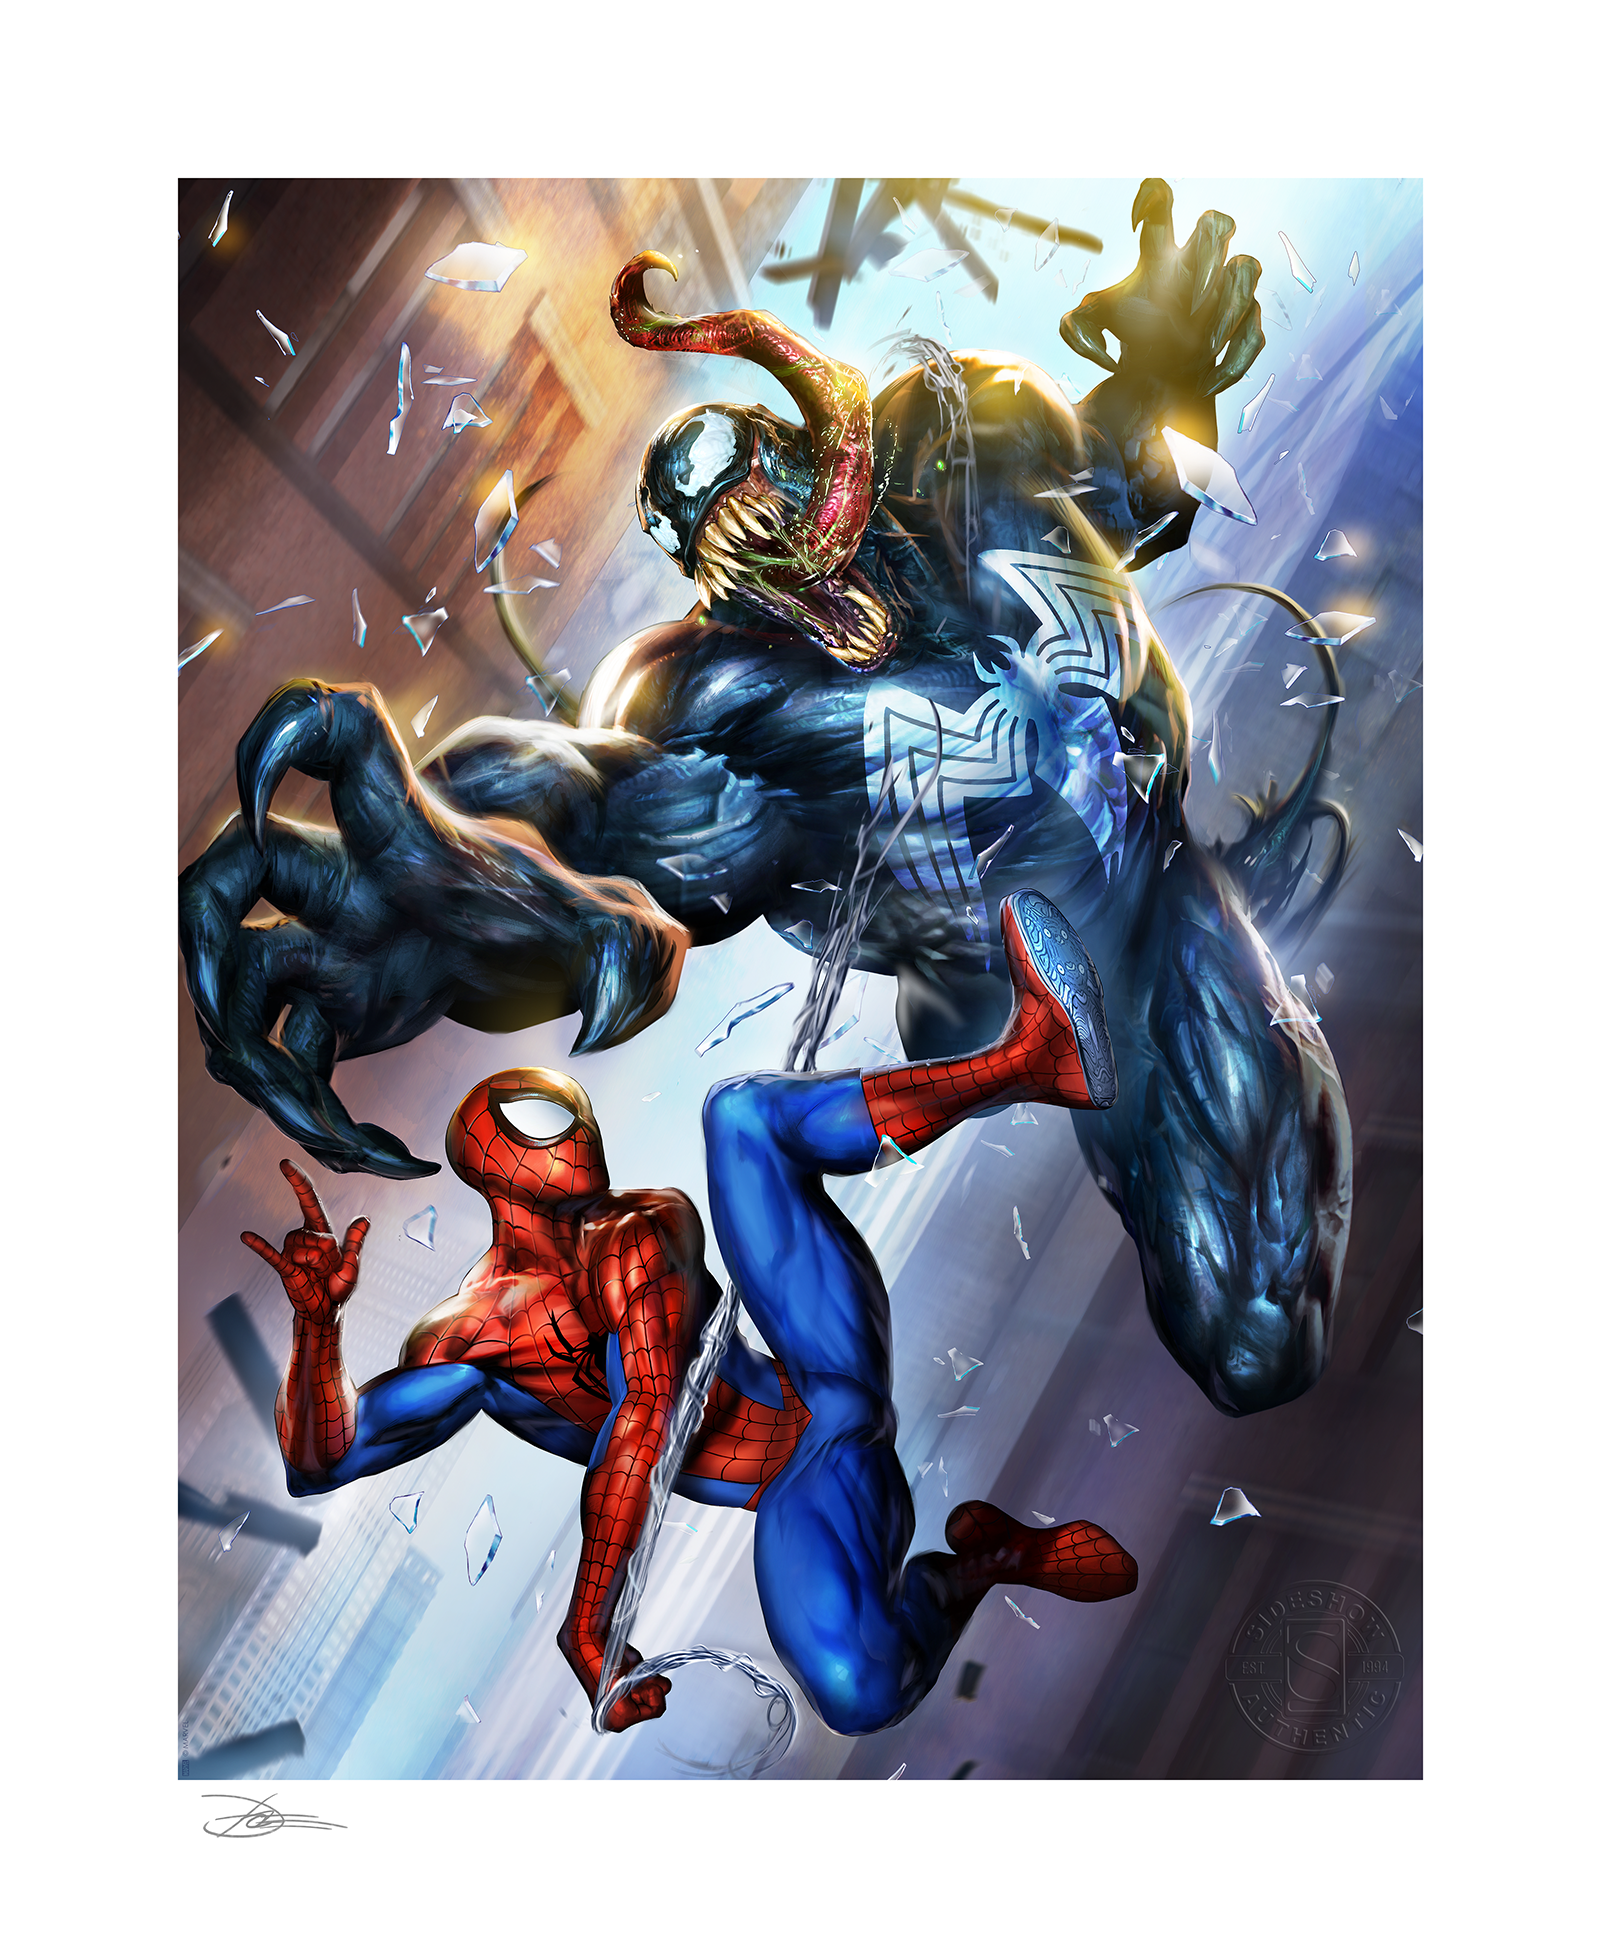 sideshow-marvel-spiderman-vs-venom-unframed-limited-art-print-toyslife